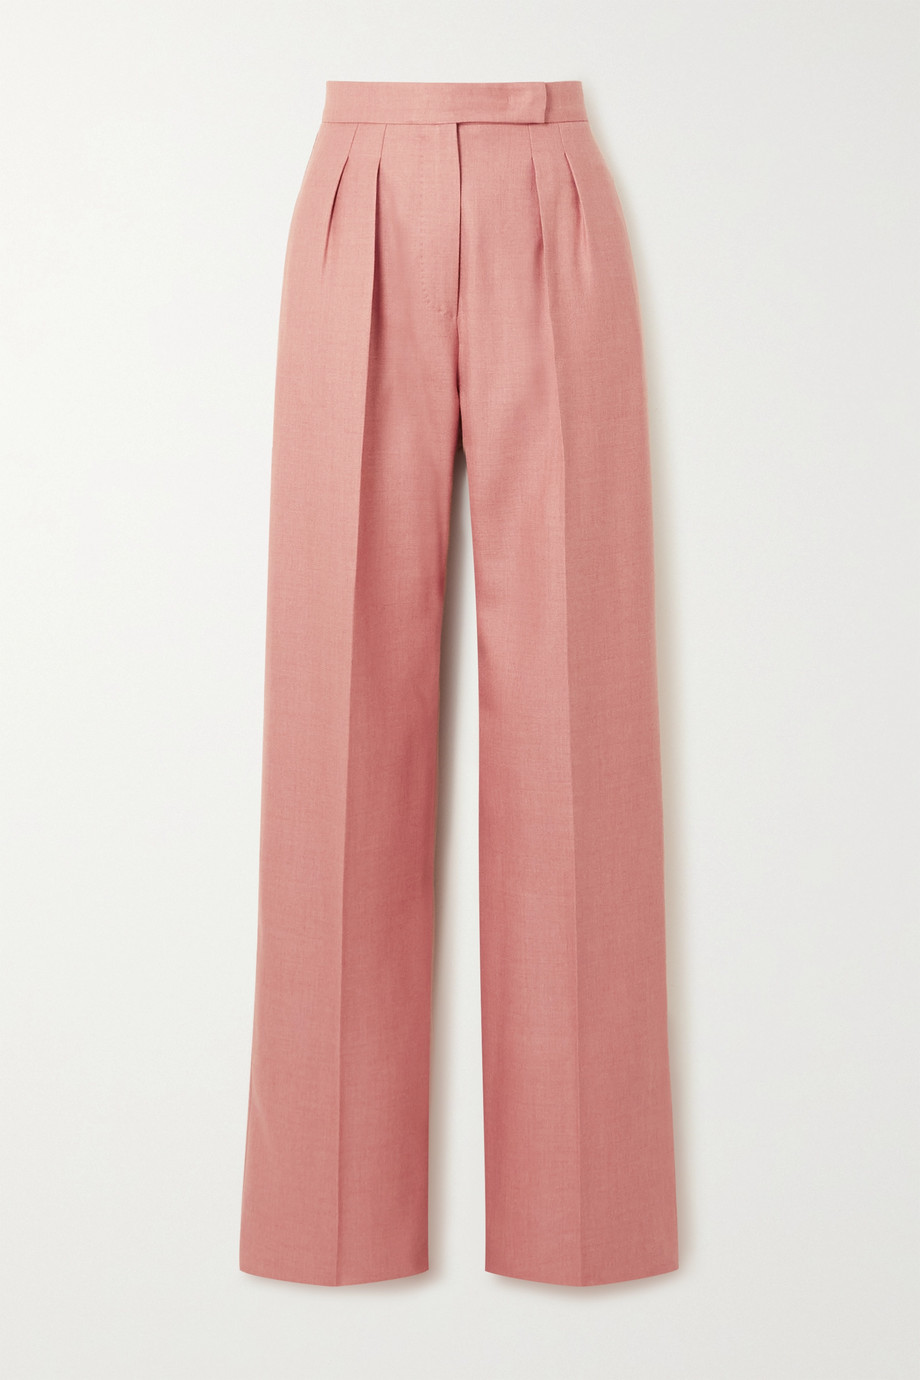 Max Mara Josef pleated camel hair and silk-blend twill wide-leg pants